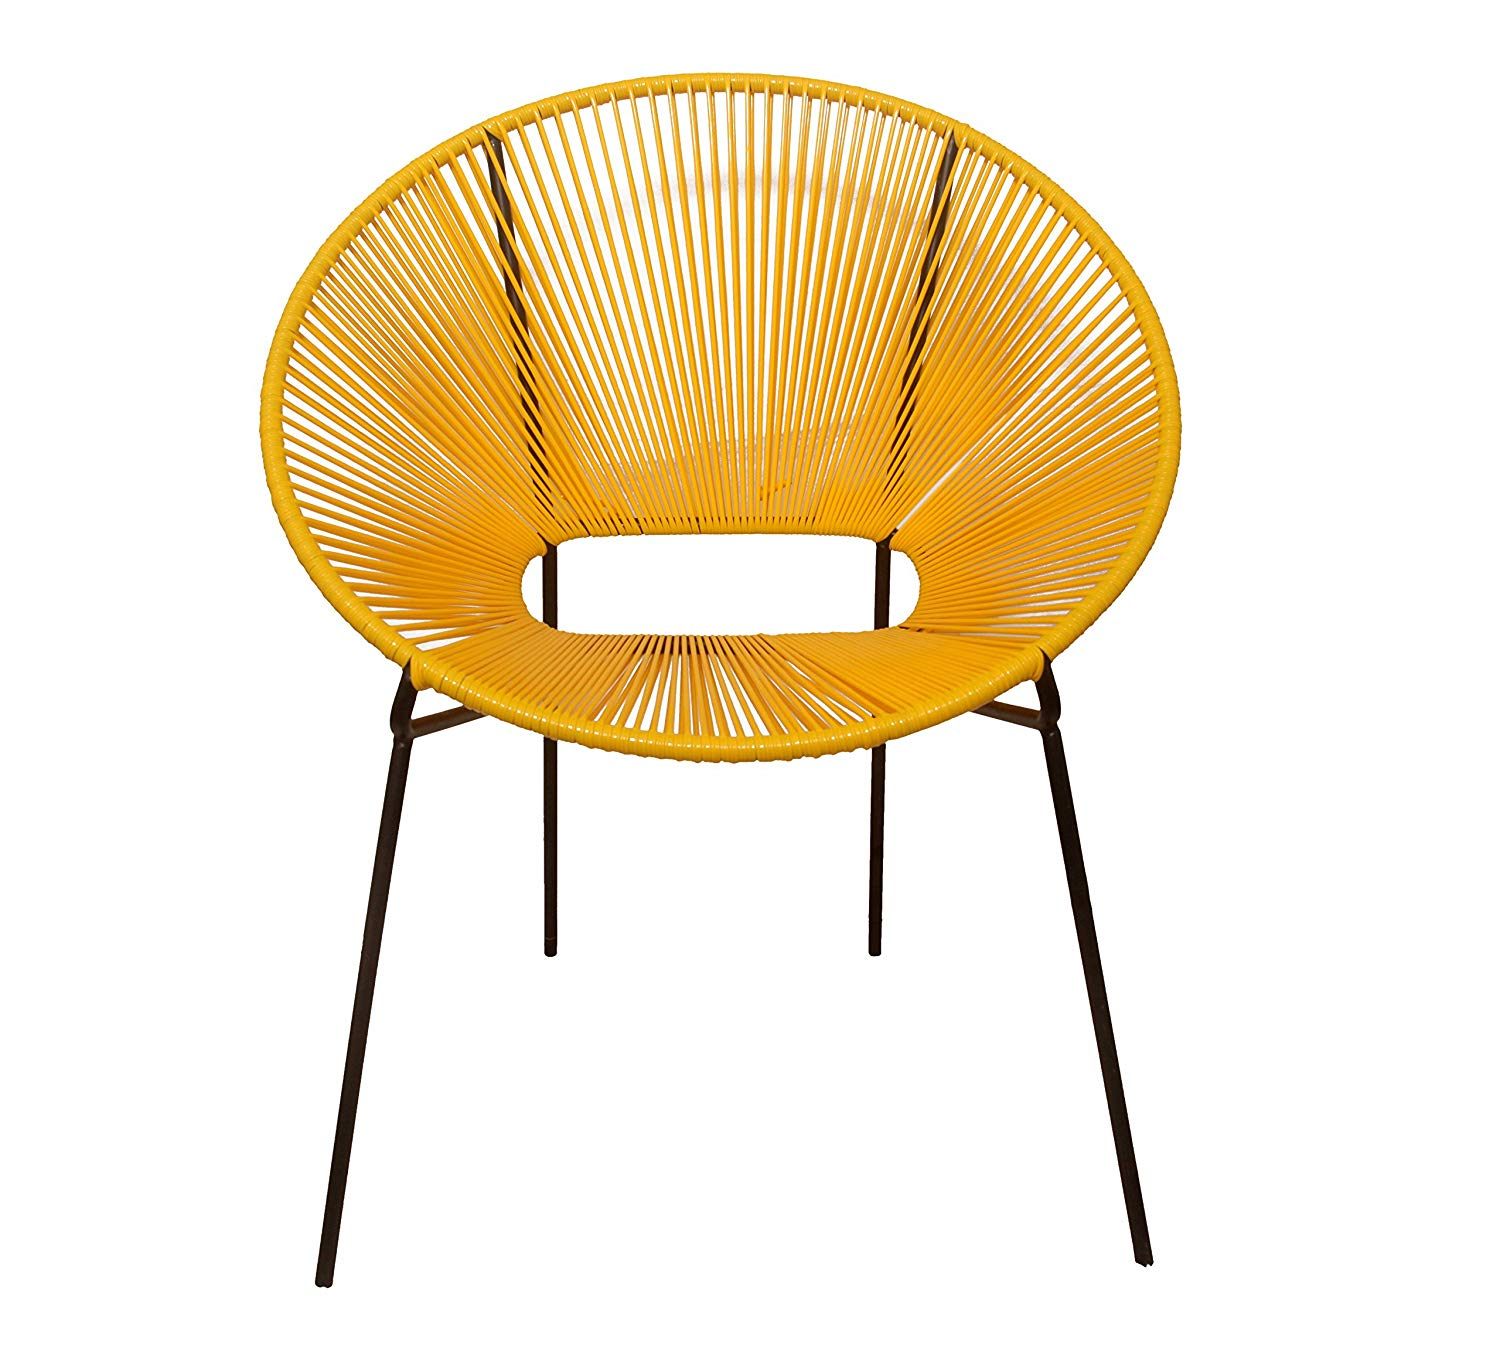 Madhu's COLLECTION Relax with Our take on The Classic Acapulco Lounge Chair (Yellow/Black). A Limited Edition MG Decor